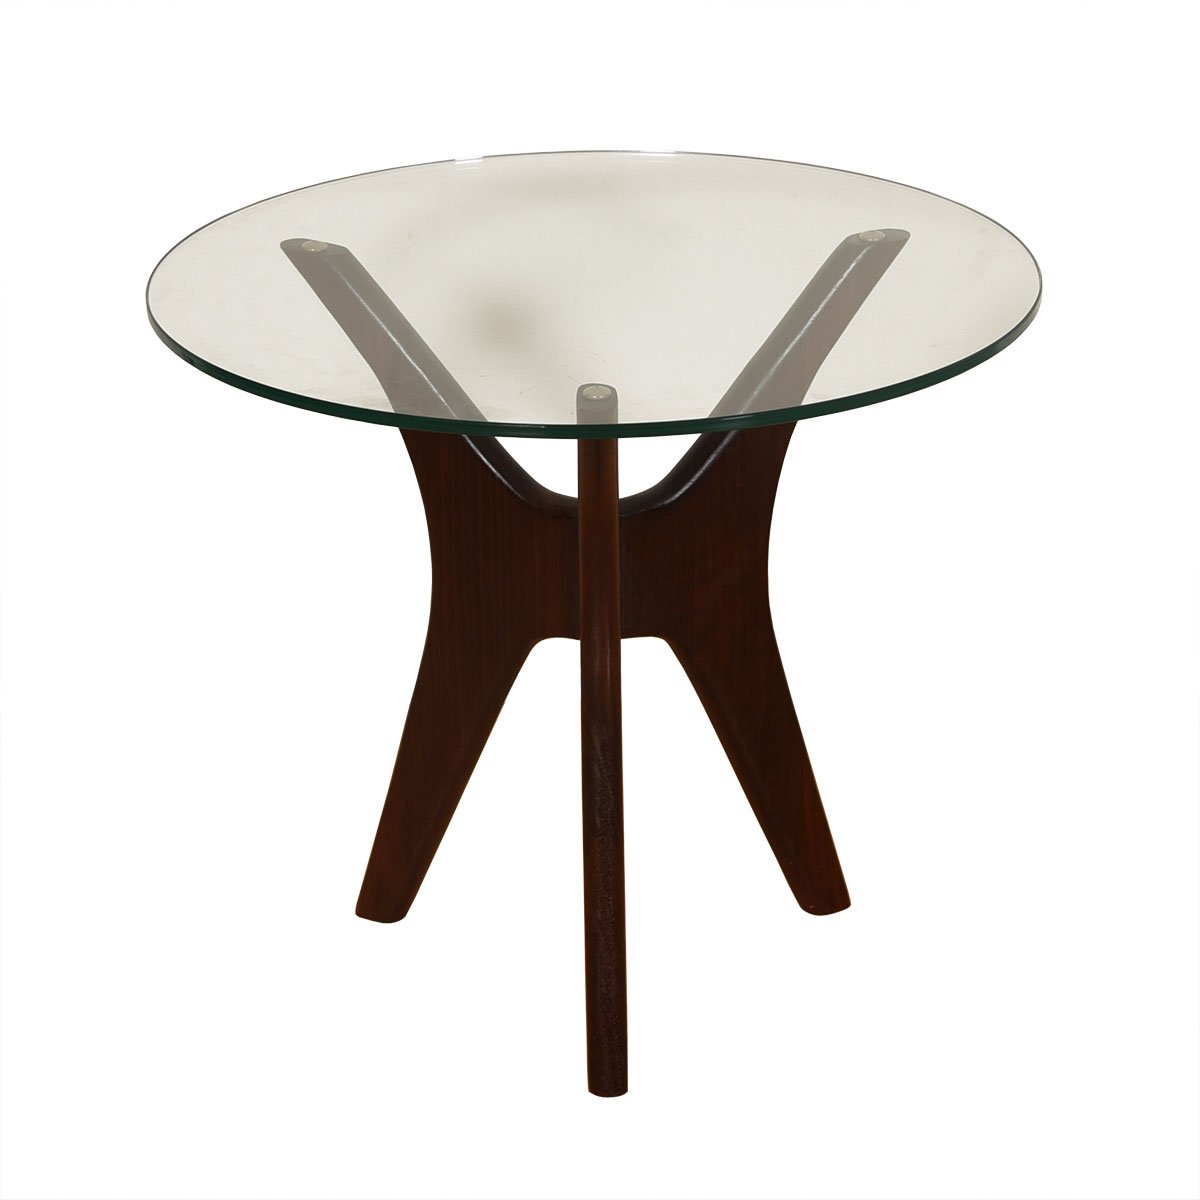 Mid Century Pearsall Round Glass Top Accent – Coffee Table w/ Walnut Base